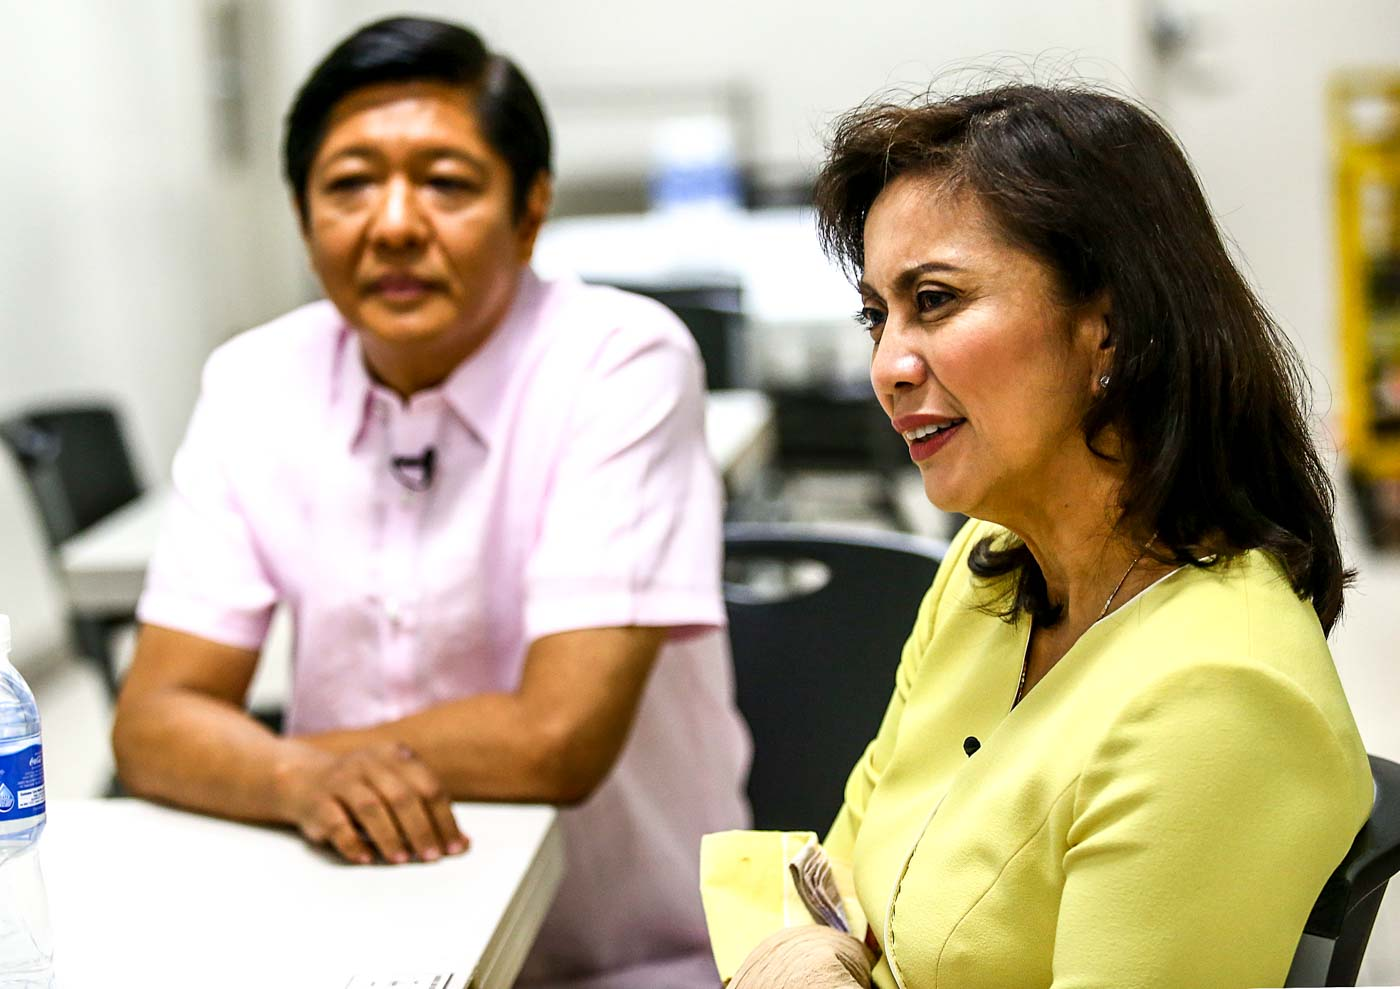 Marcos to Robredo: Why are you afraid of vote recount?